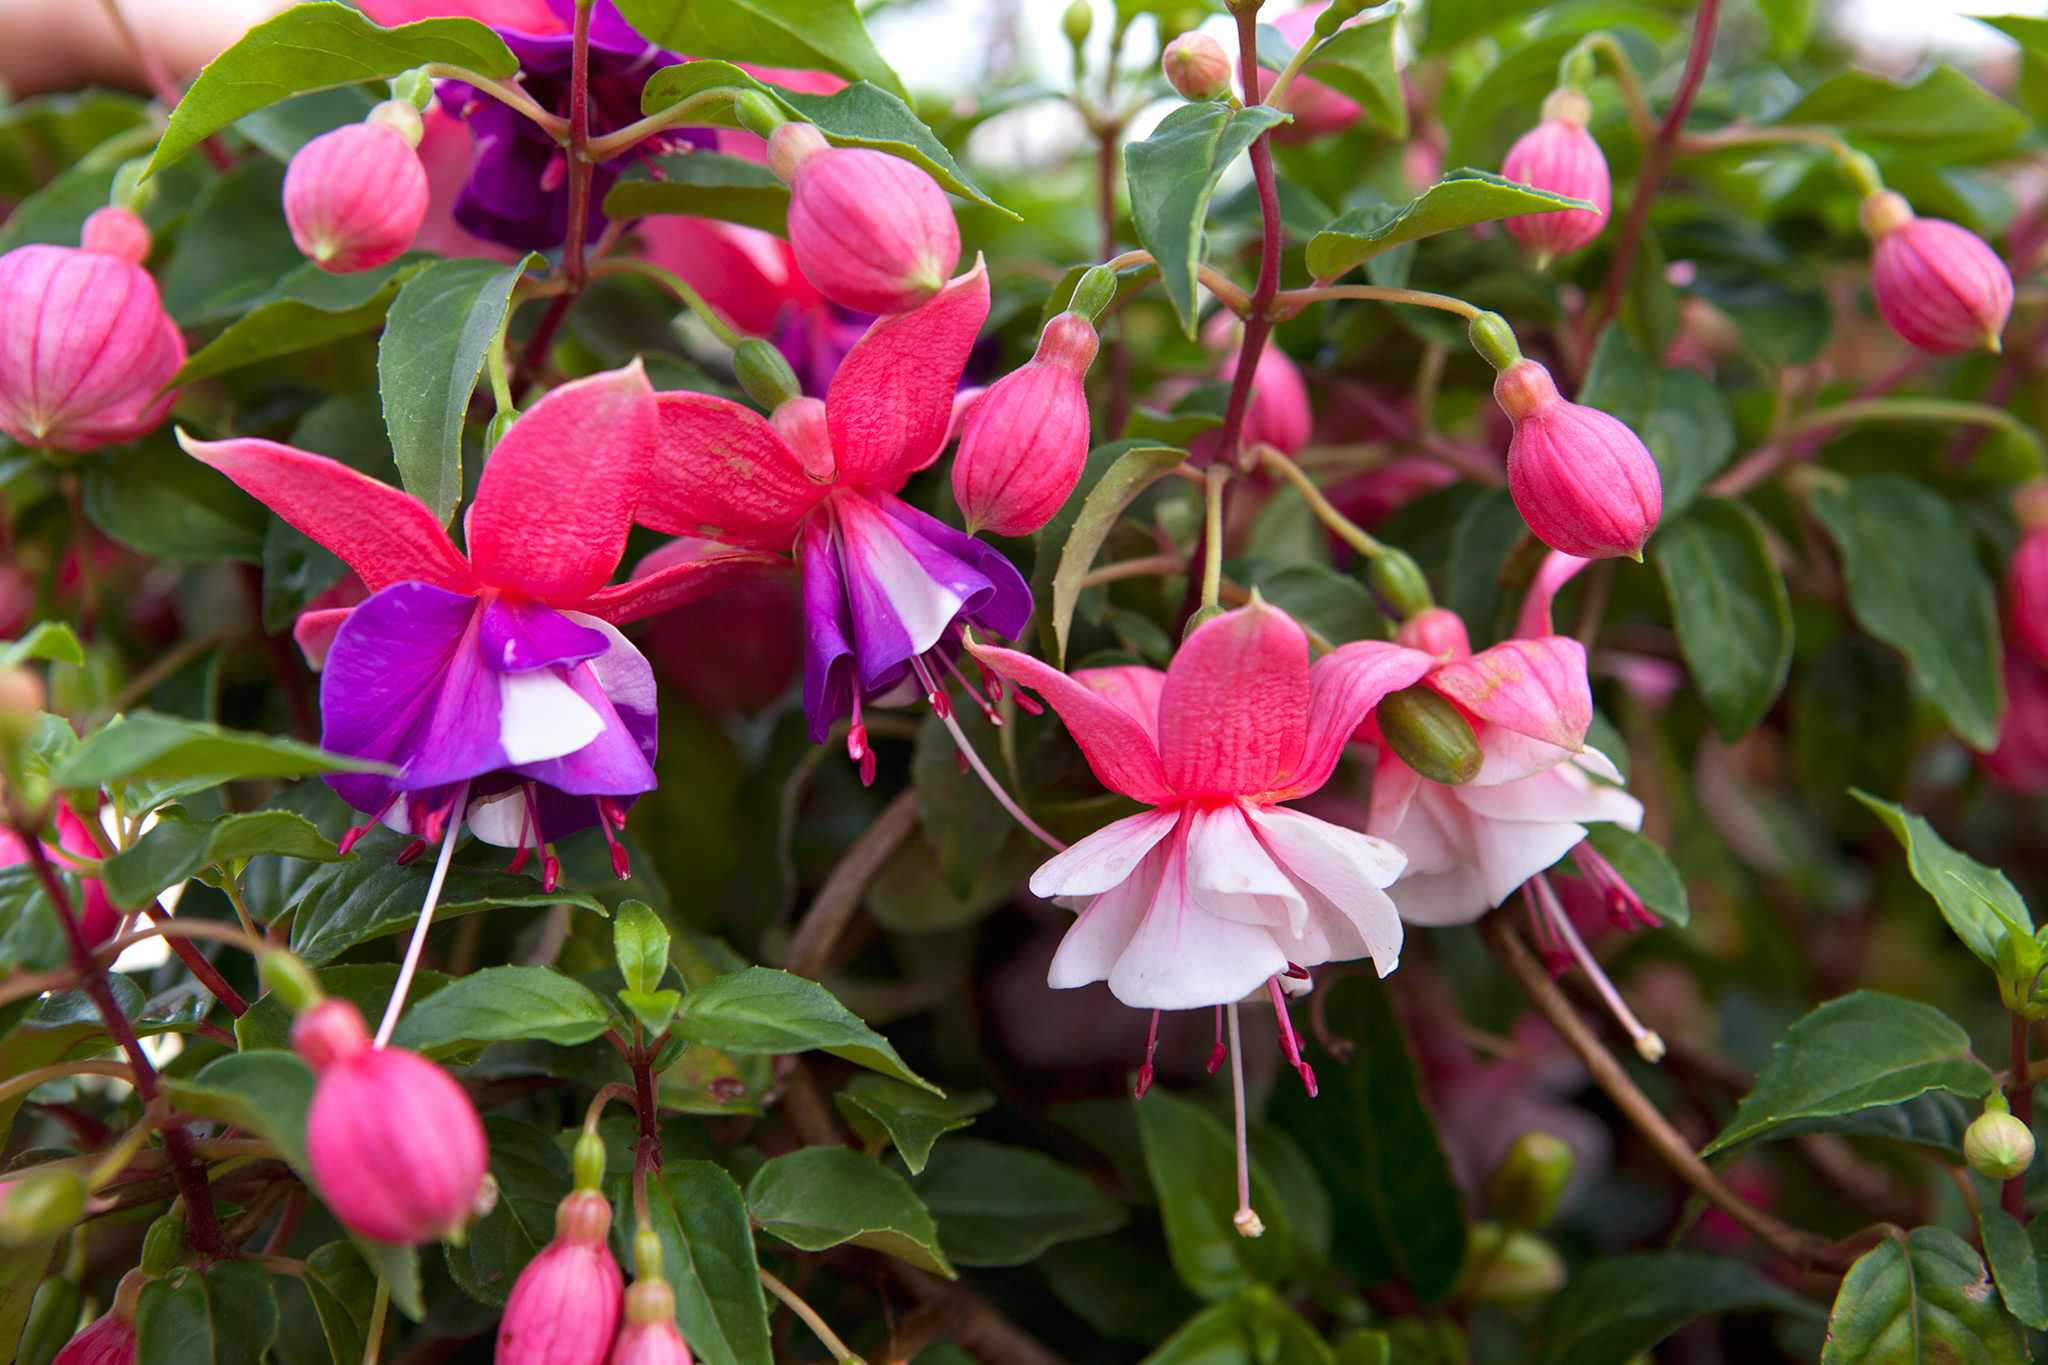 Grow guide - fuchsias